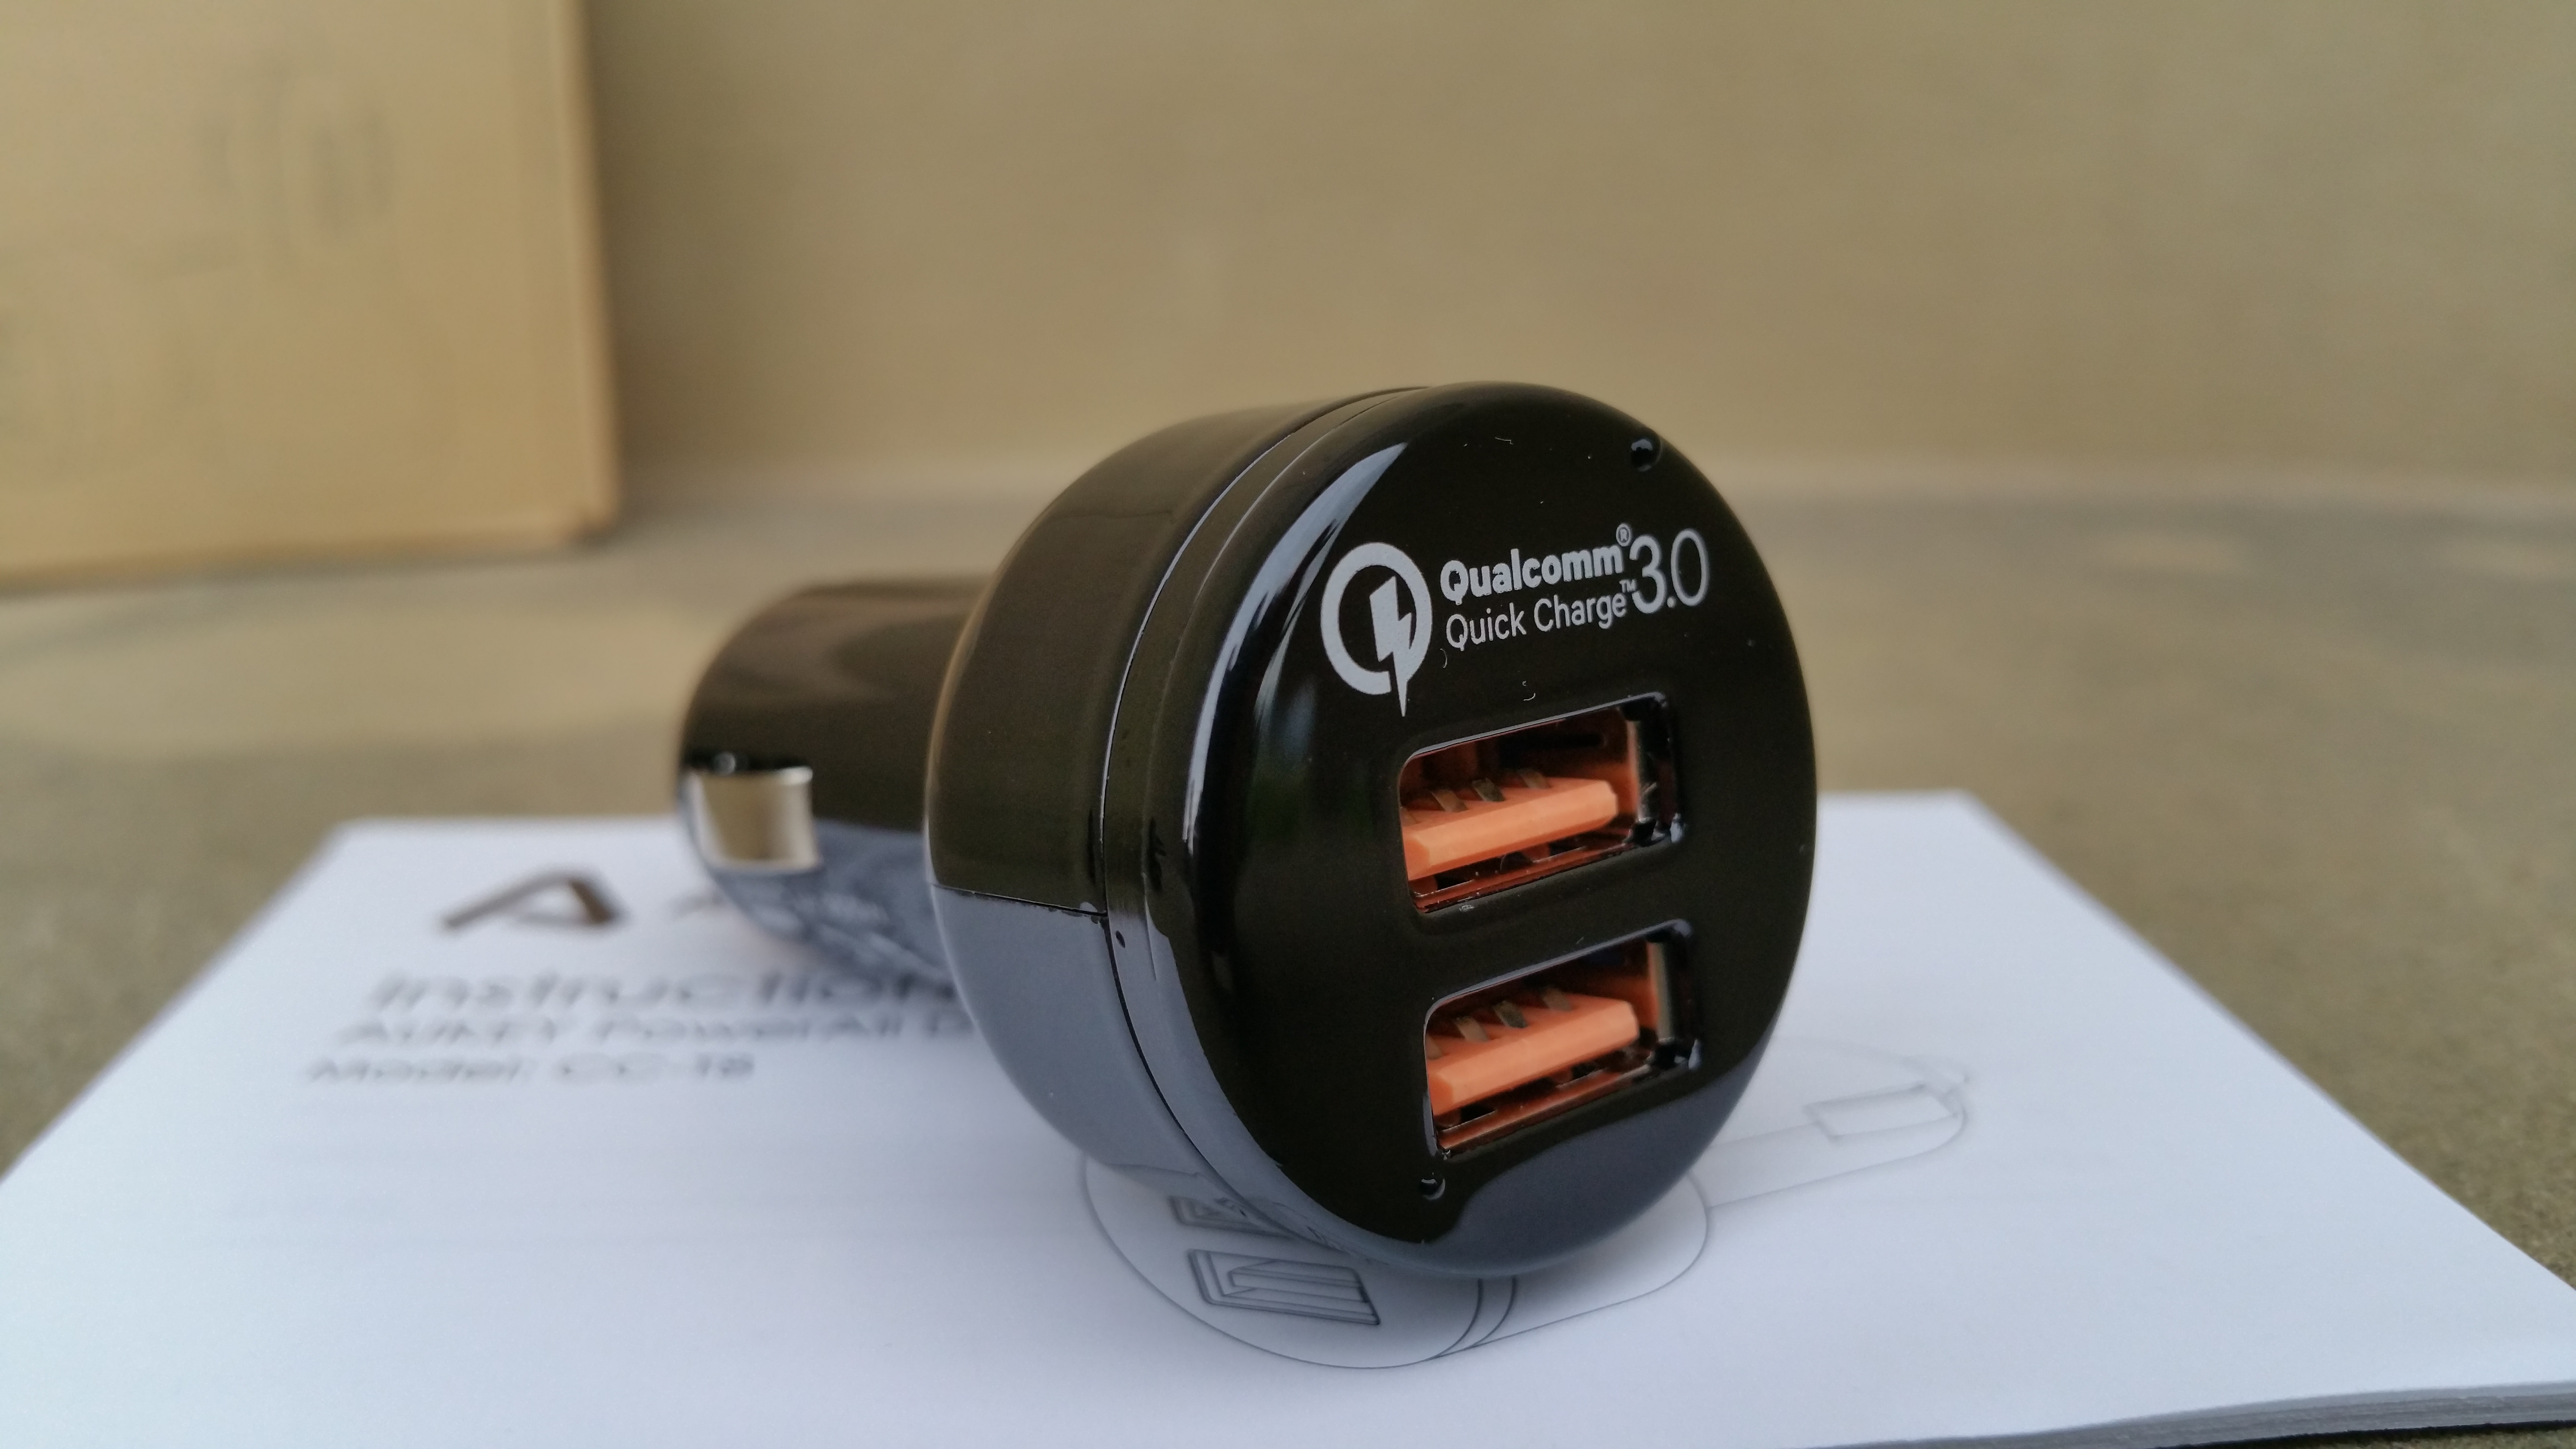 aukey quick charge 3 0 kfz ladeger t mit powerall. Black Bedroom Furniture Sets. Home Design Ideas